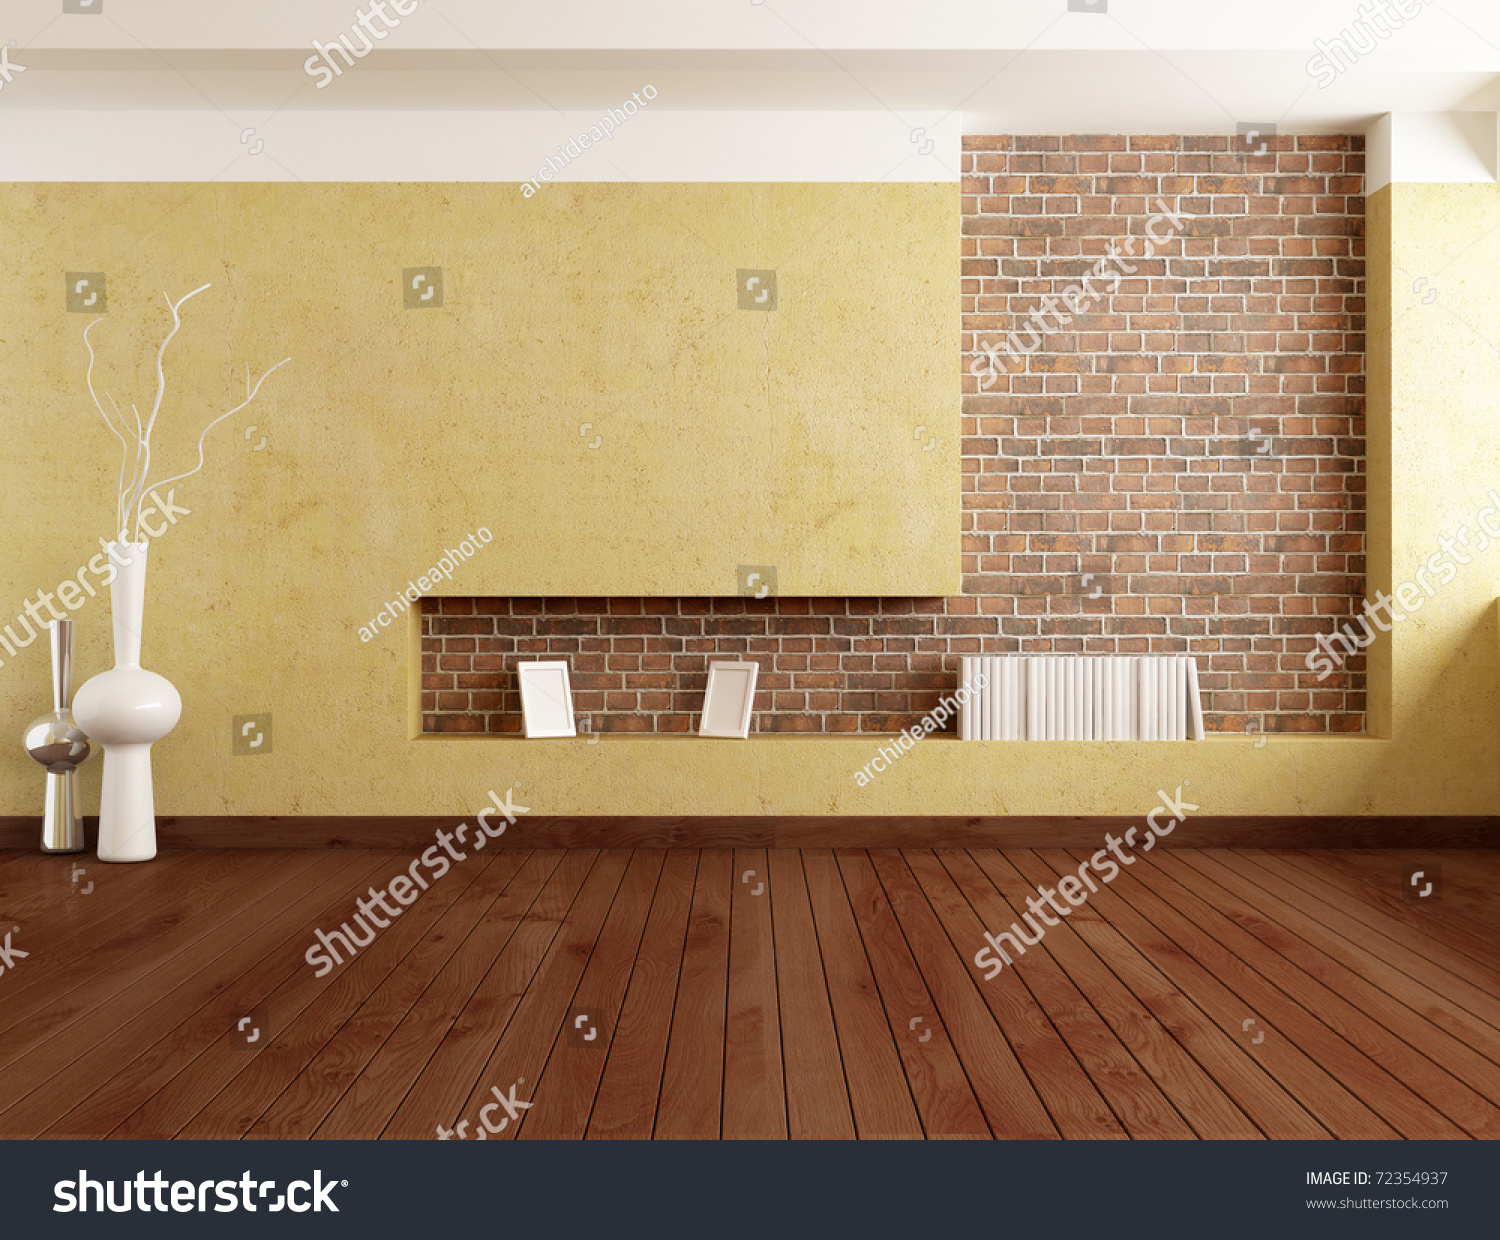 Empty Minimalist Room Plaster Wall Brick Stock Illustration 72354937 ...